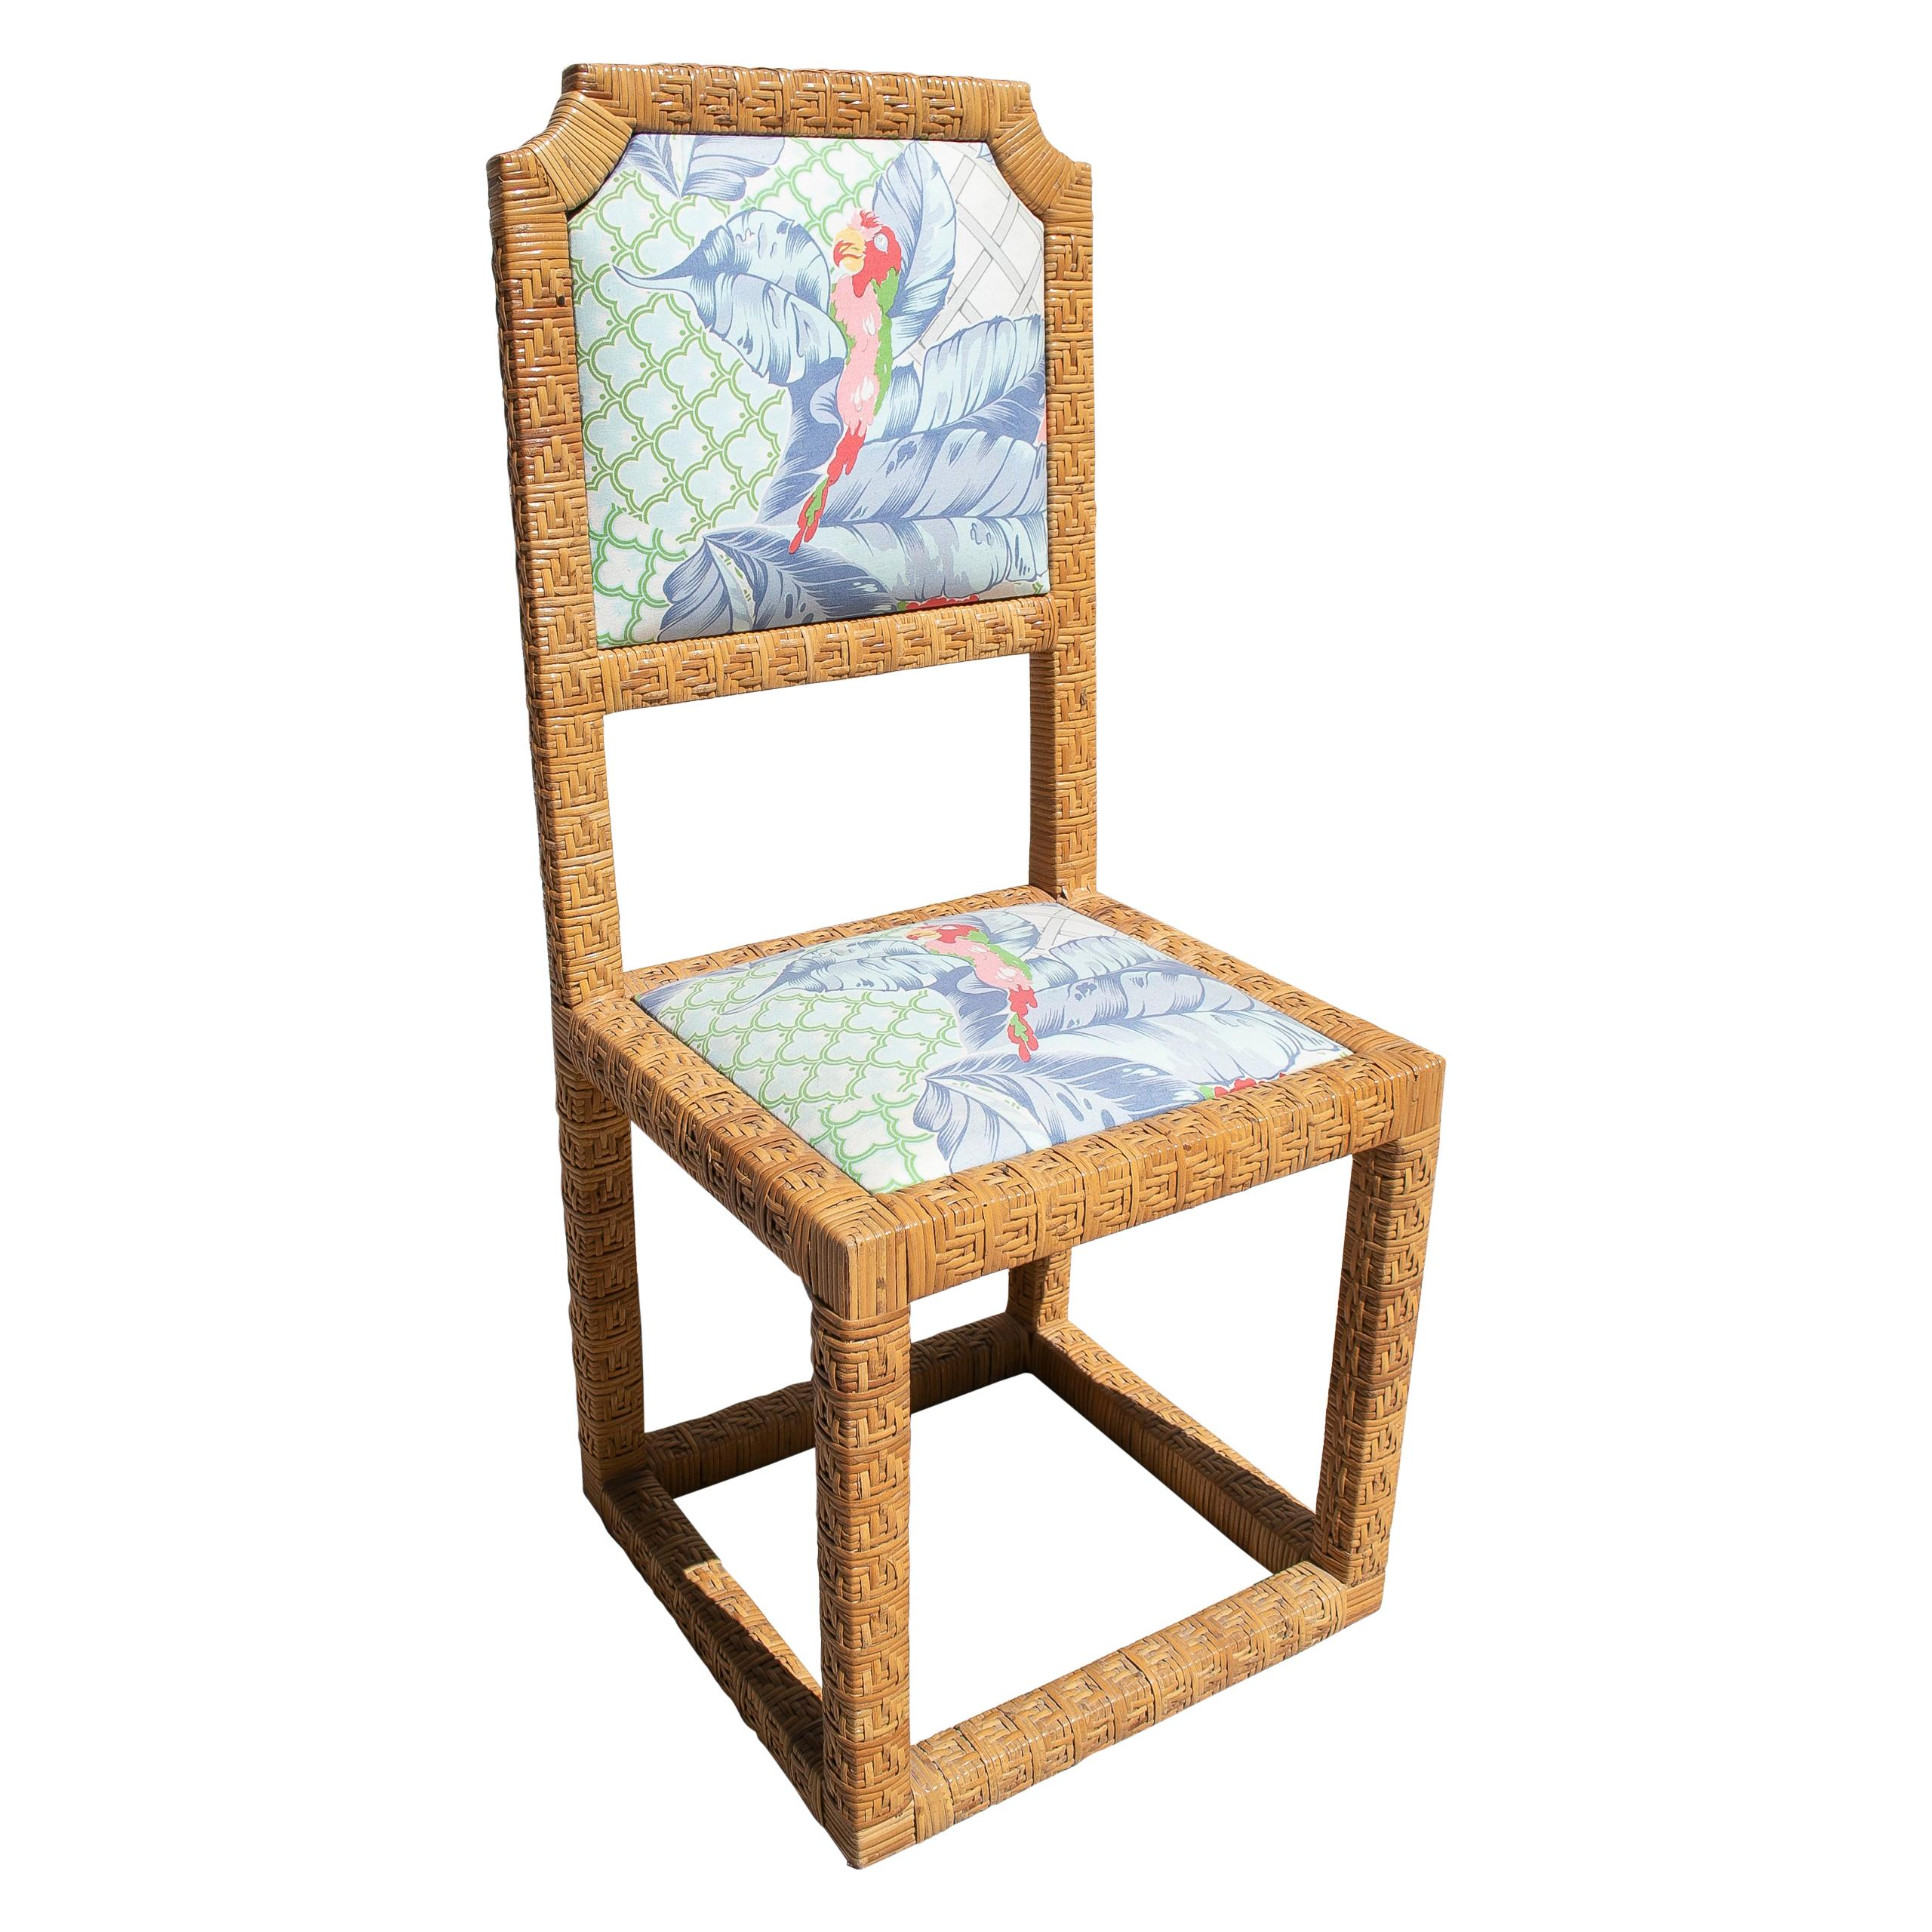 1970s Spanish Vintage Hand Woven Lace Wicker Chair w/ Original Upholstery